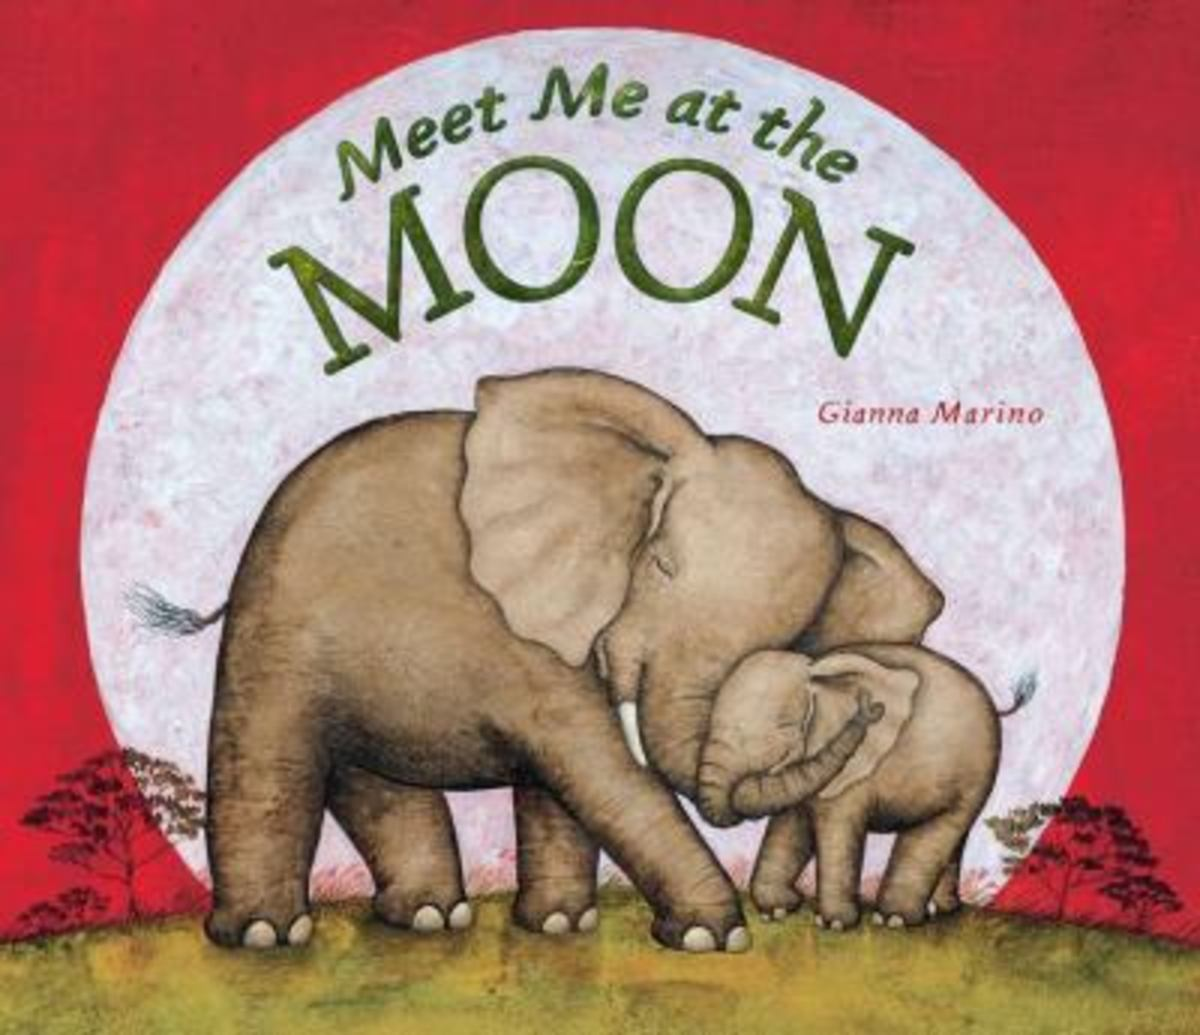 Books for Mothers Meet Me at the Moon